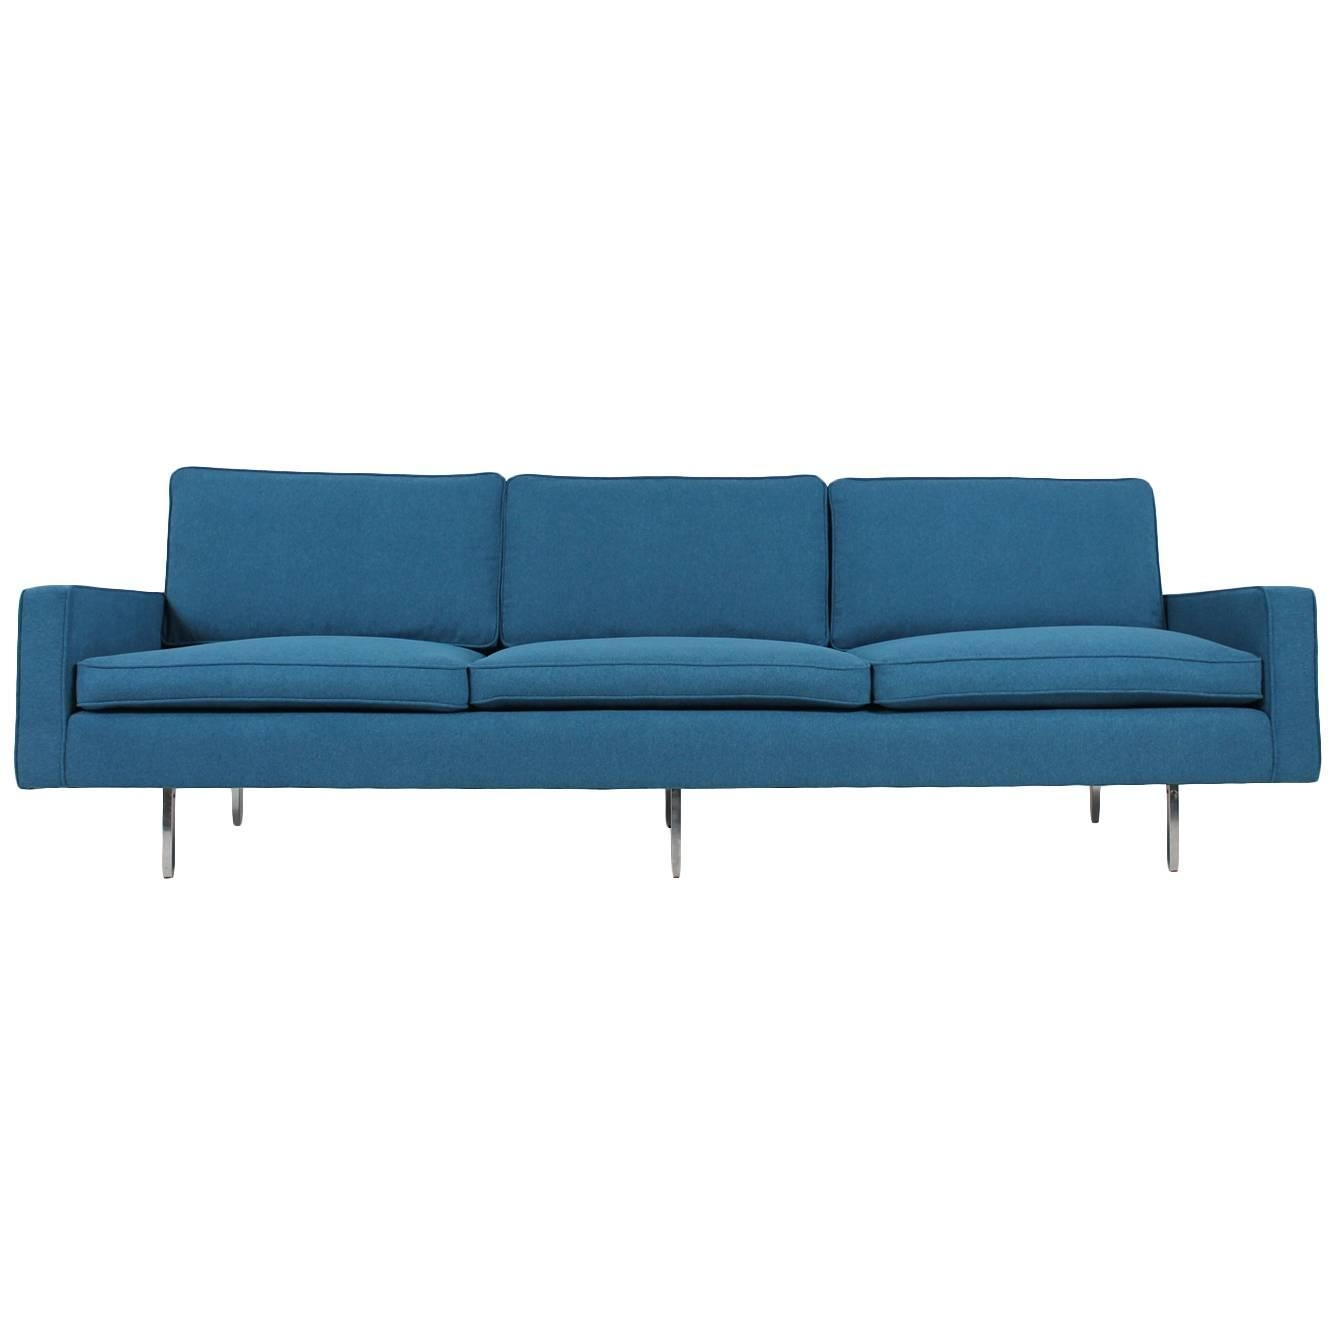 Beautiful Mid Century Florence Knoll Sofa Mod 25 Bc Knoll With Florence Knoll Fabric Sofas (Image 2 of 15)